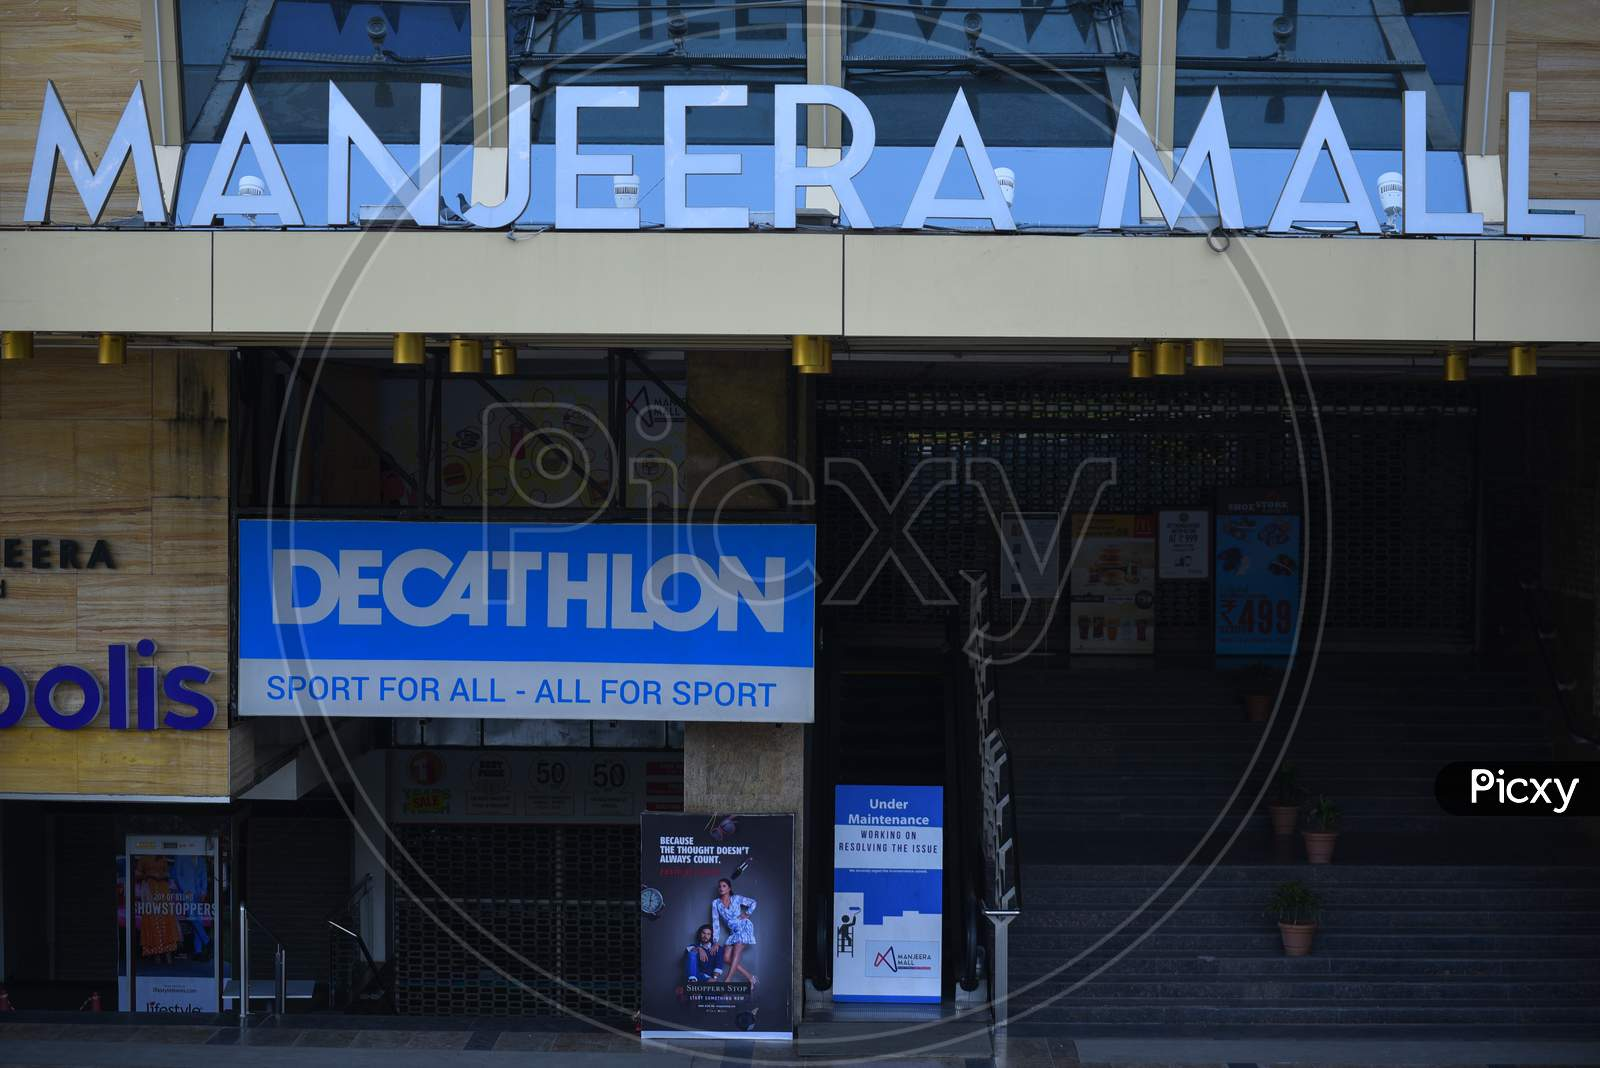 Manjeera Mall, Janata Curfew, March 22,2020, Kphb,Hyderabad